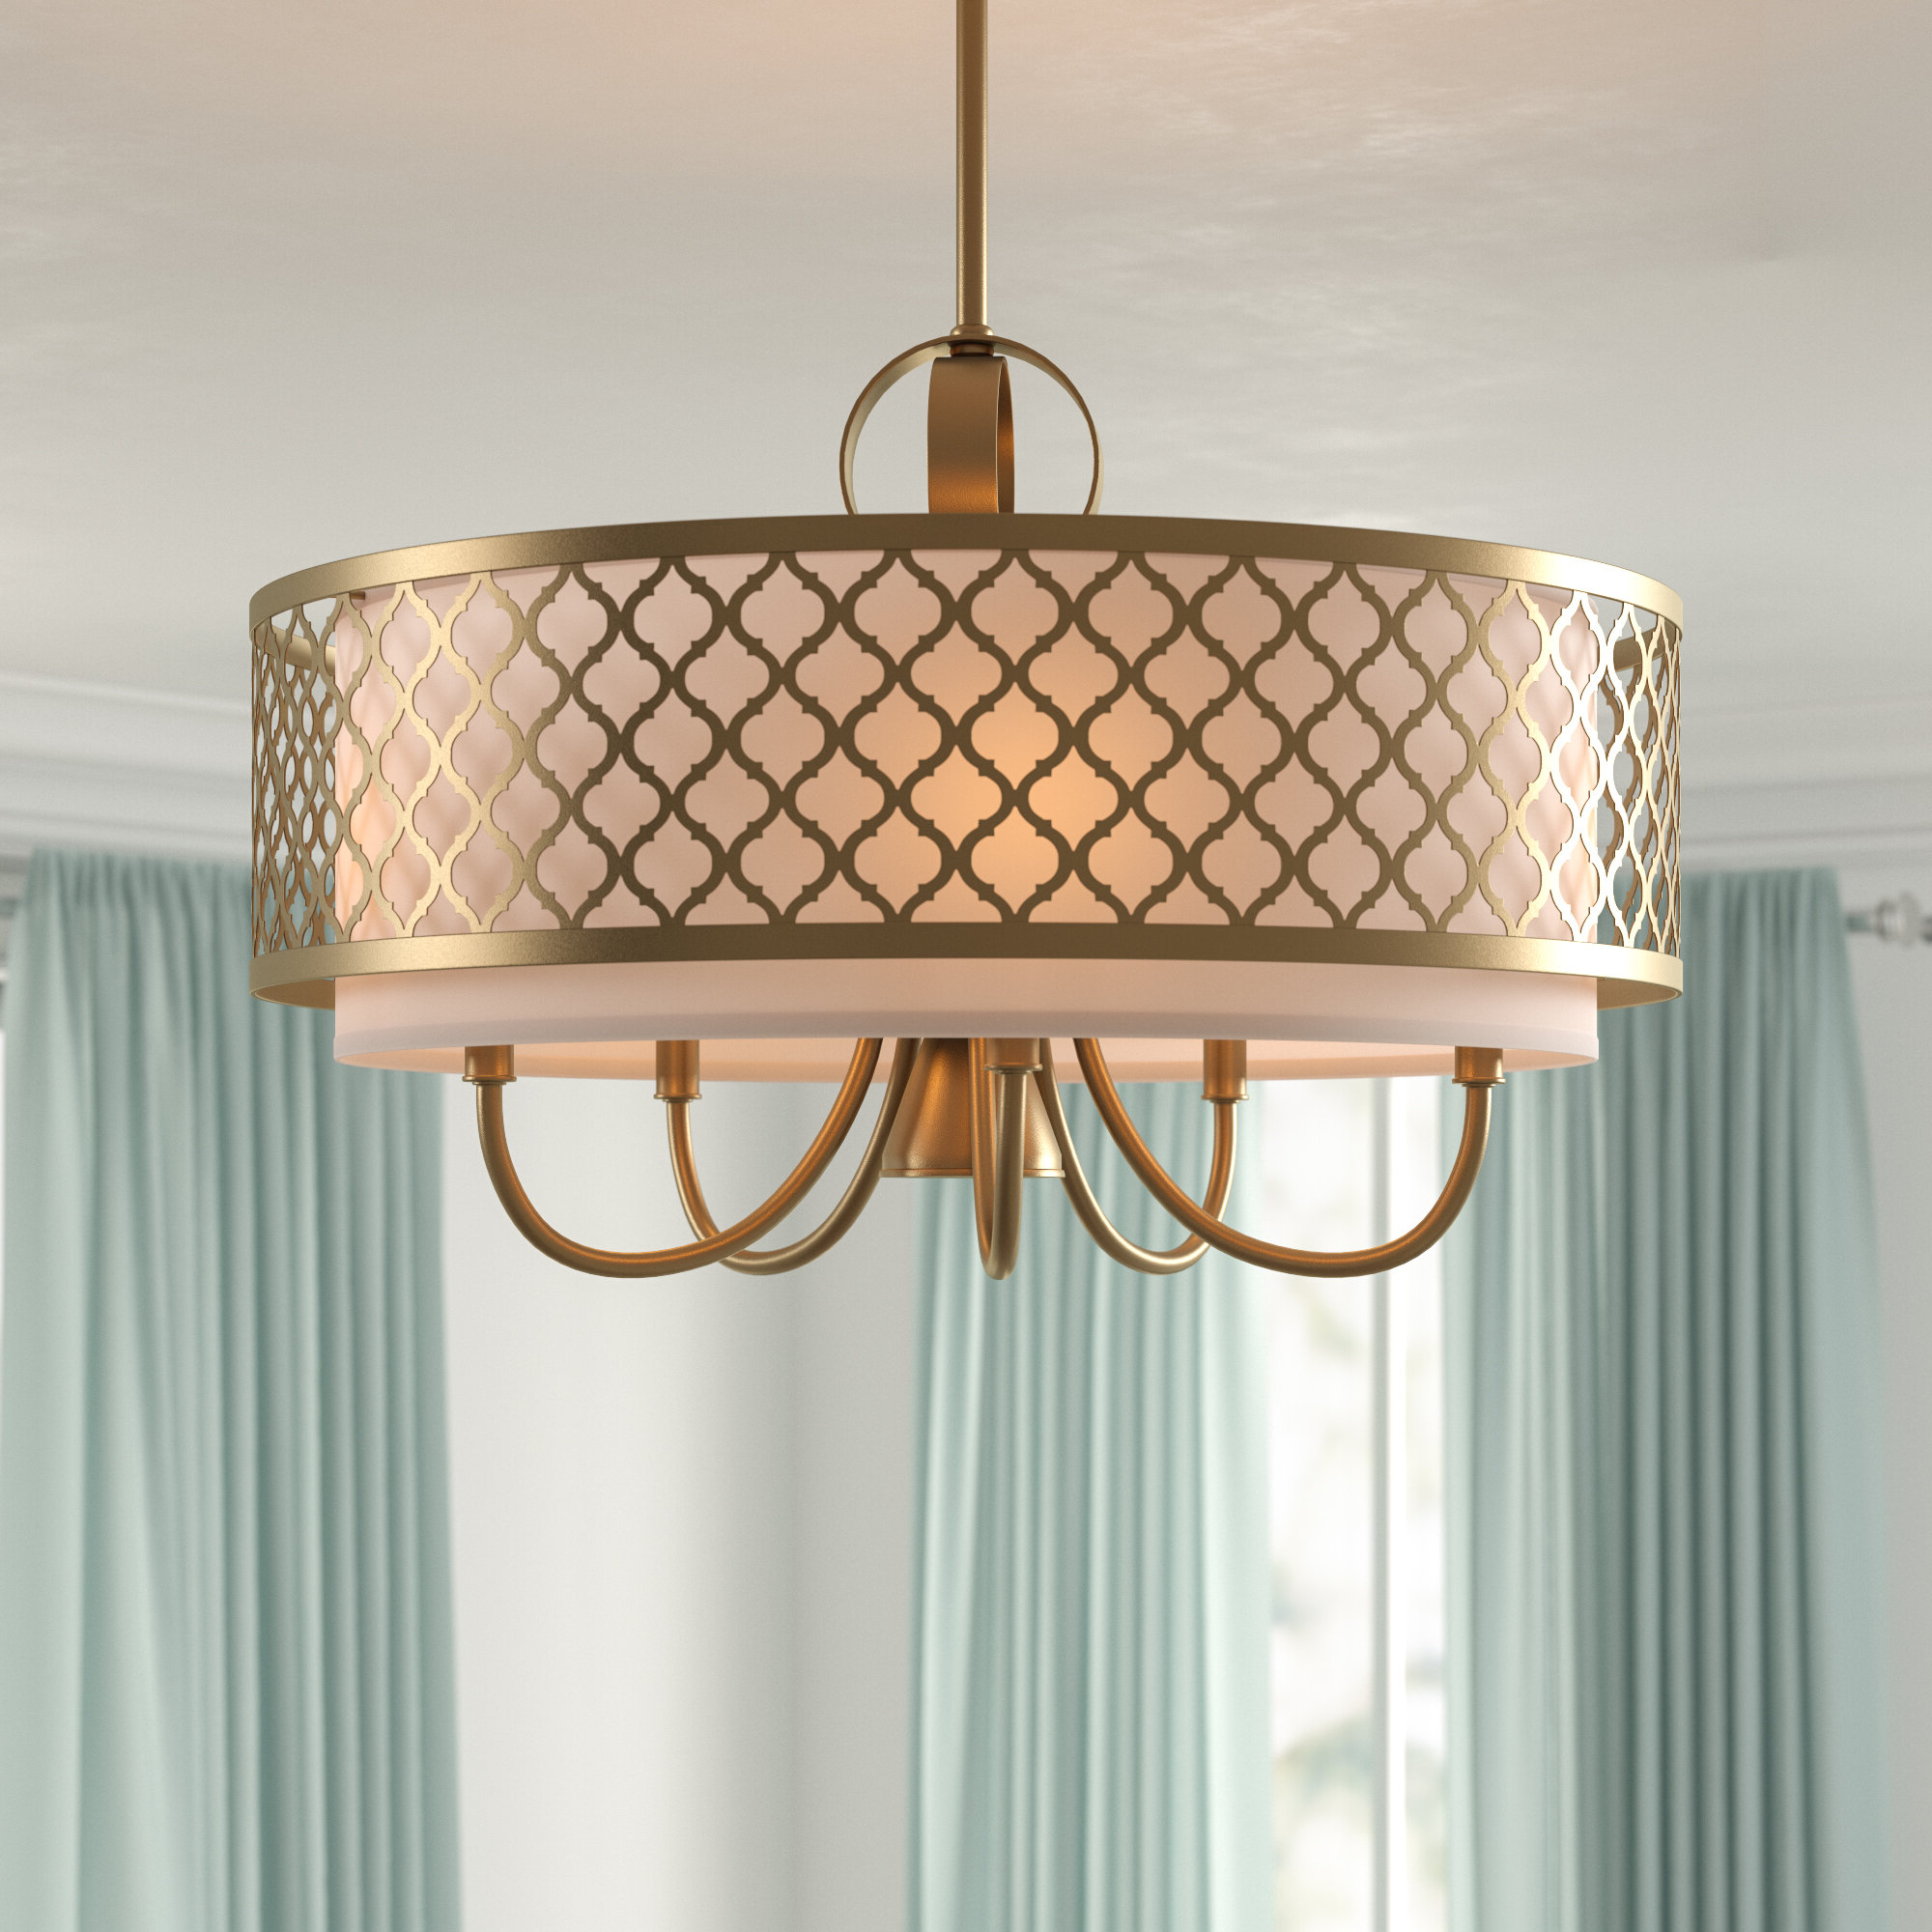 Favorite Tymvou 6 Light Drum Chandelier Pertaining To Wightman Drum Chandeliers (View 5 of 20)